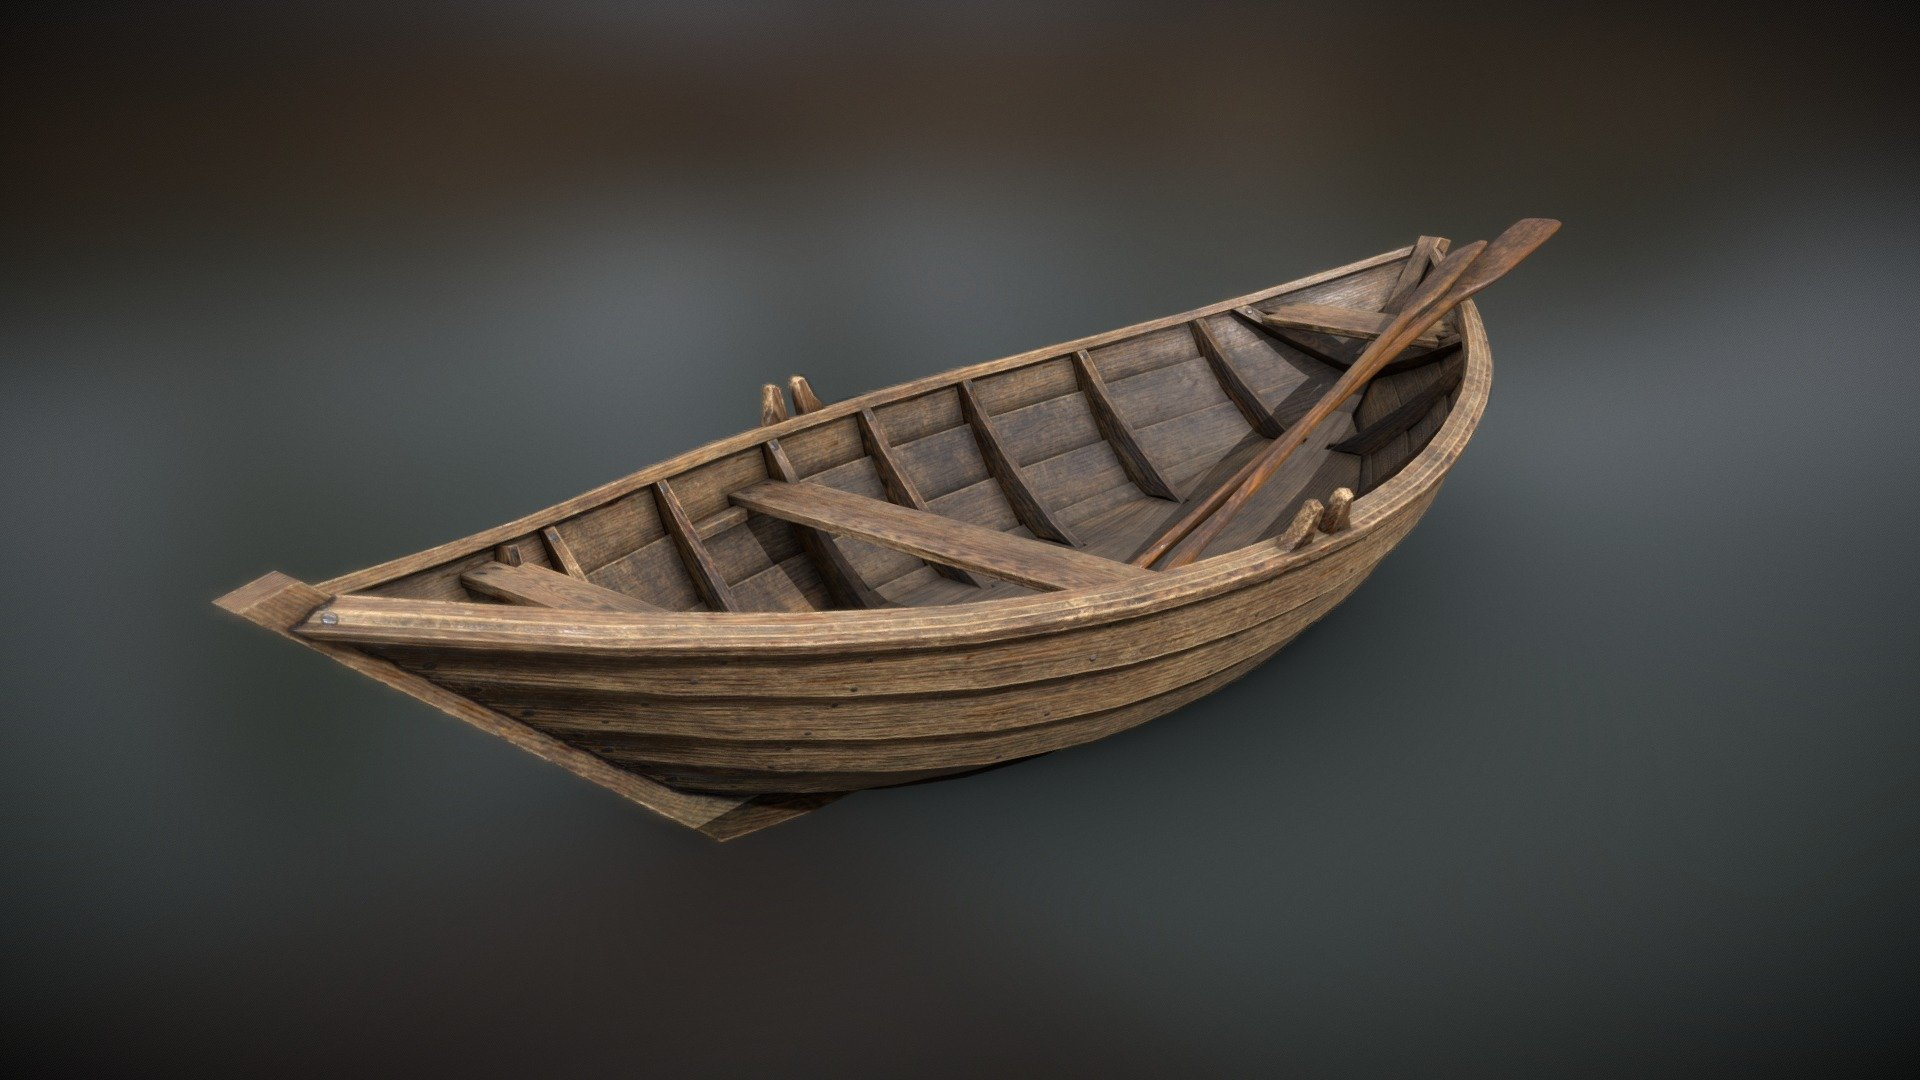 Dutch Wooden Rowing Boat - 17th and 18th century - Buy Royalty Free 3D  model by Mr. The Rich (@MatthijsDeRijk) [1706f8c]